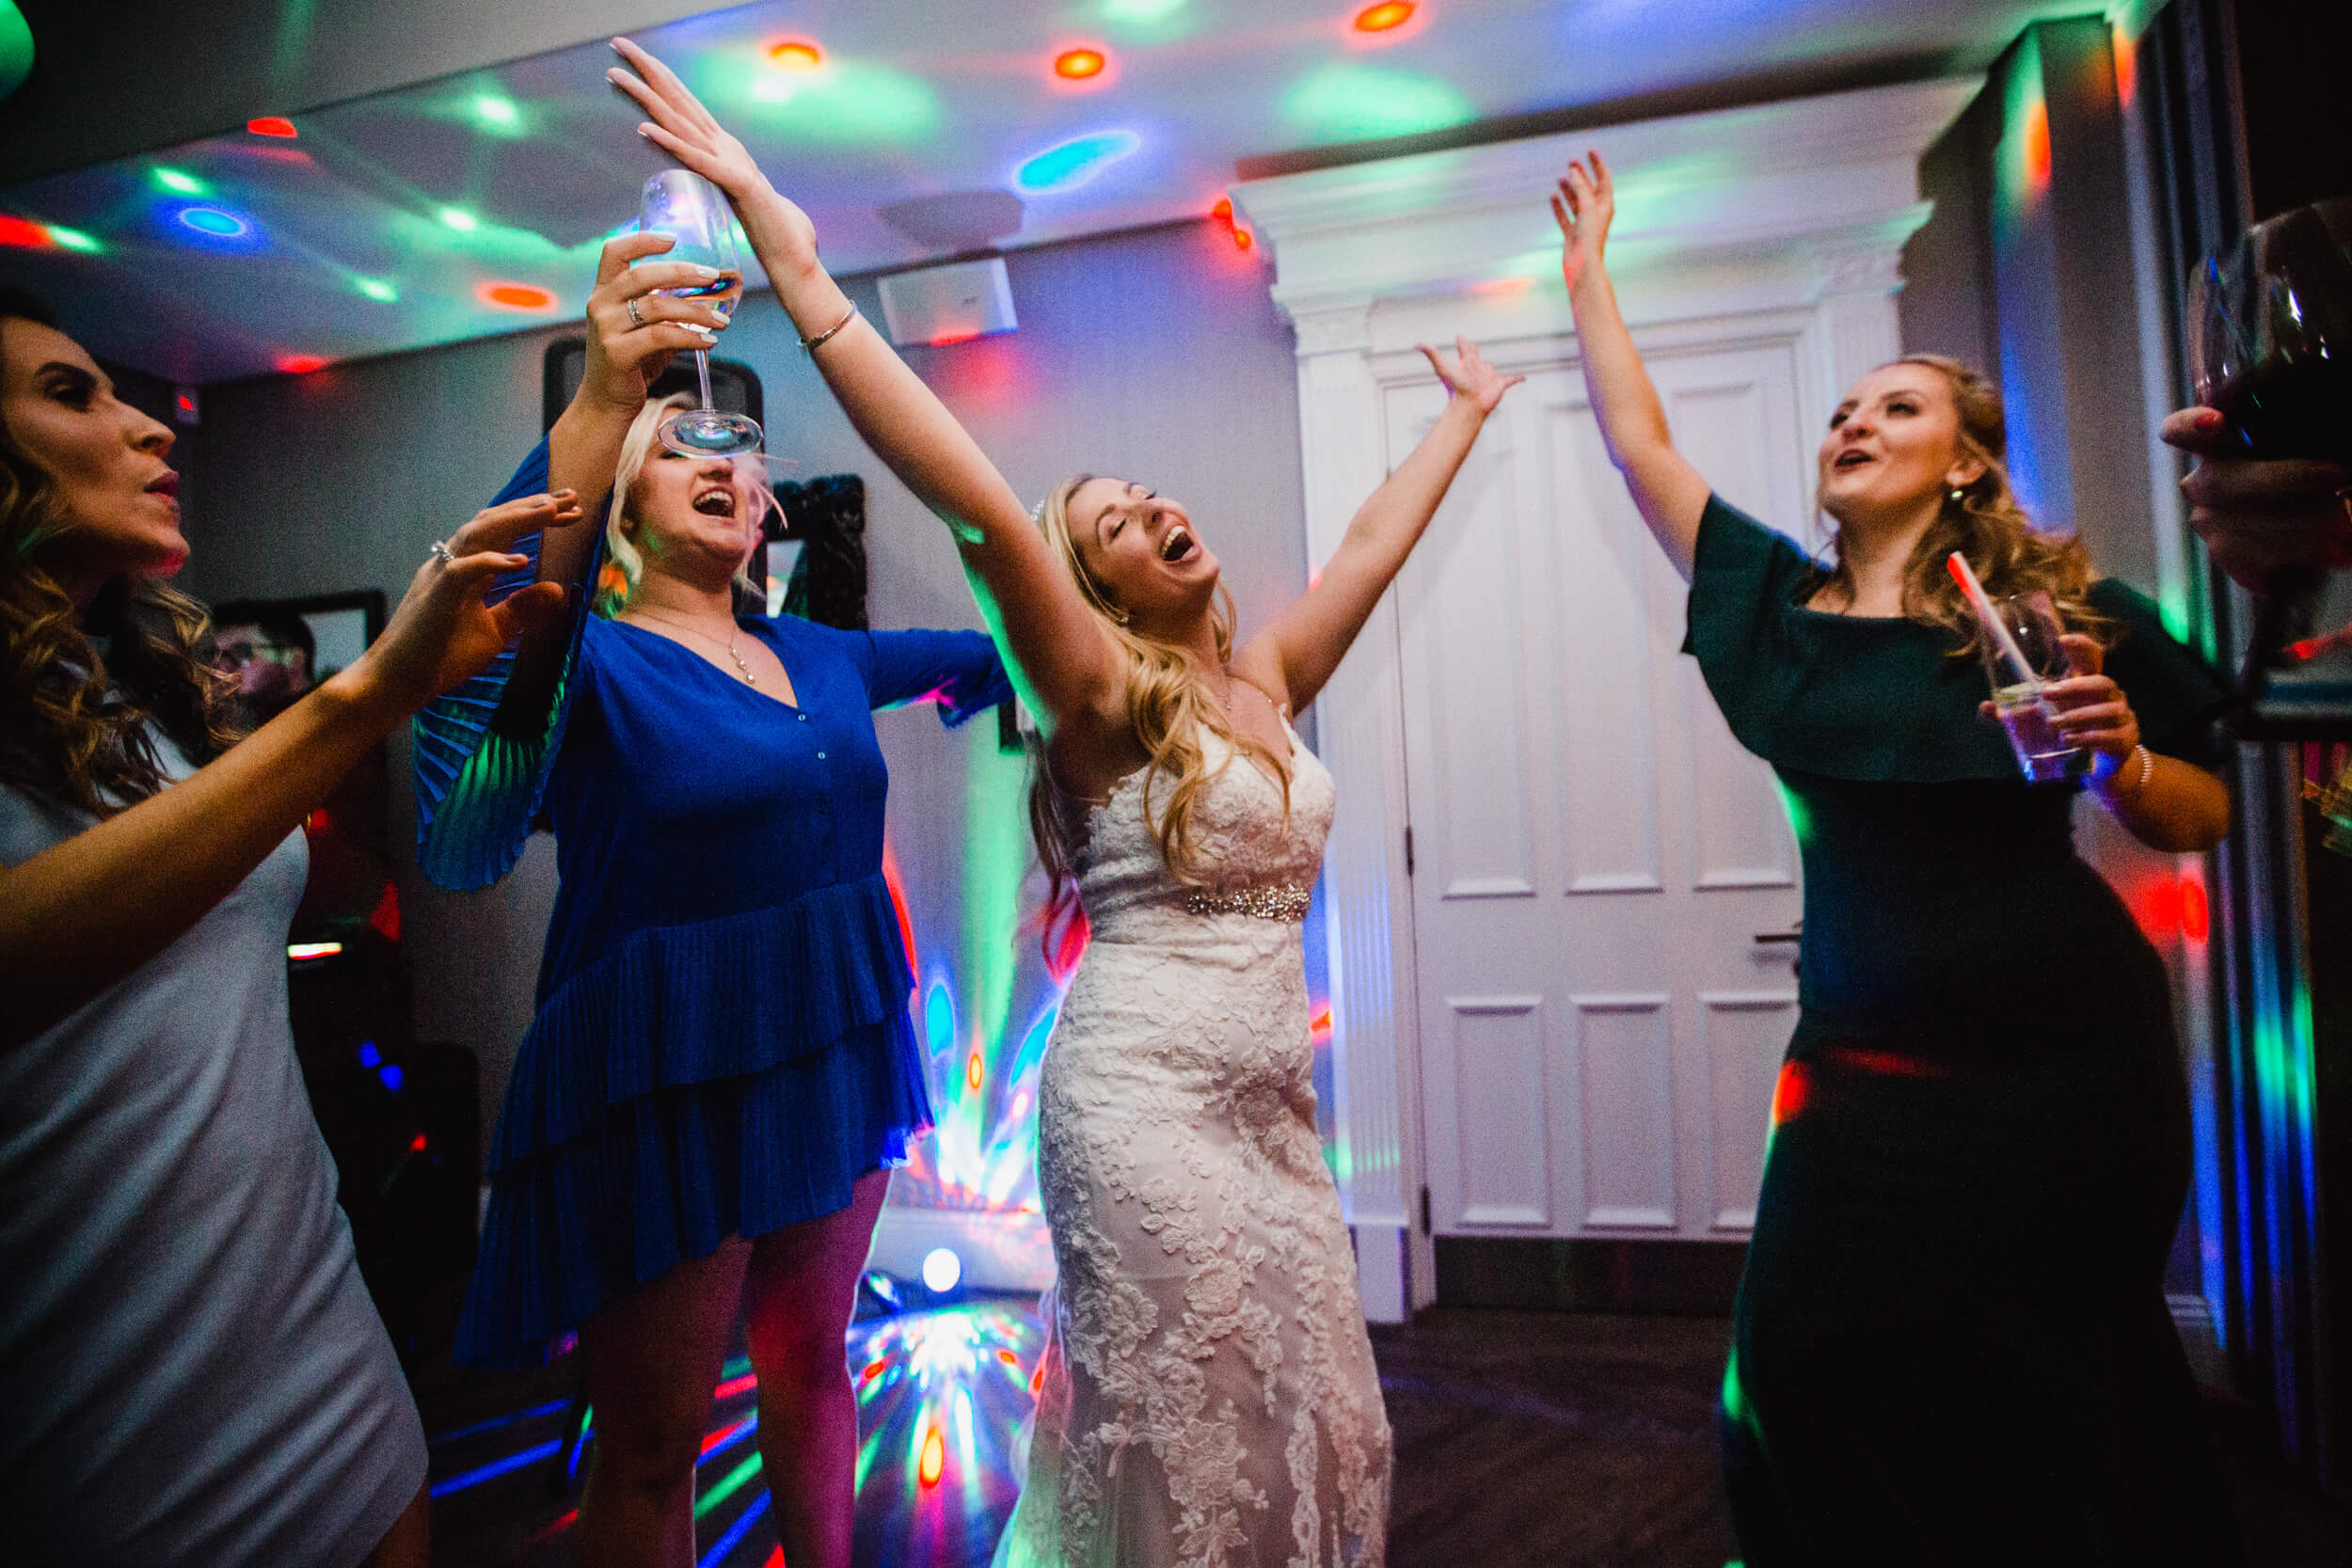 bride and bridal party dancing and holding arms in air at end of night